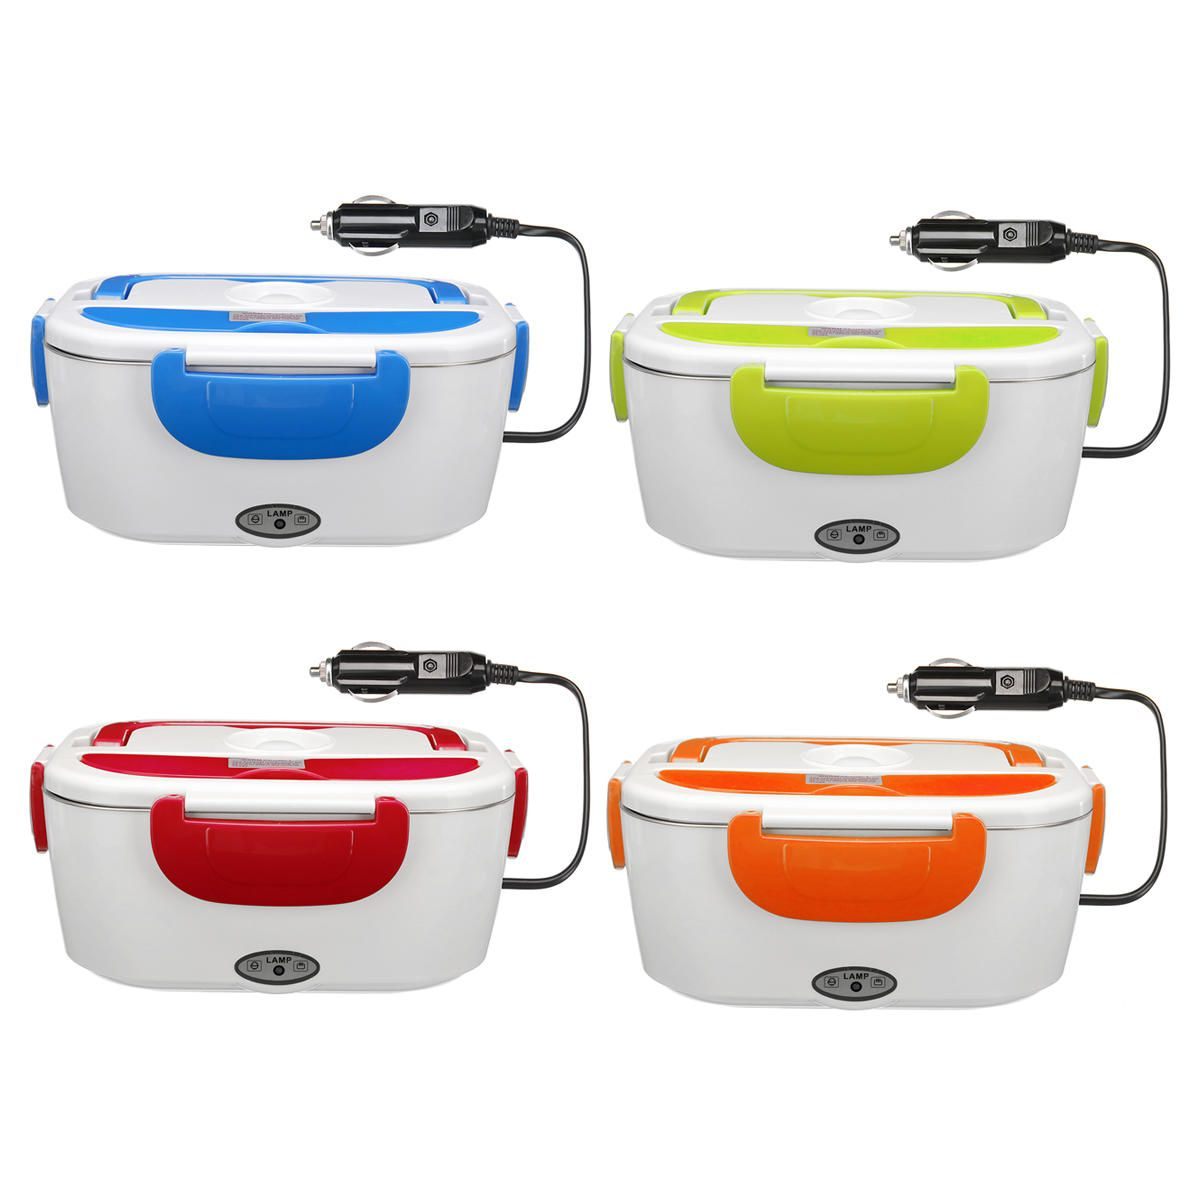 Multi functional Portable Electric Heating Lunch Box Food Heater Rice Container for Home Office Car